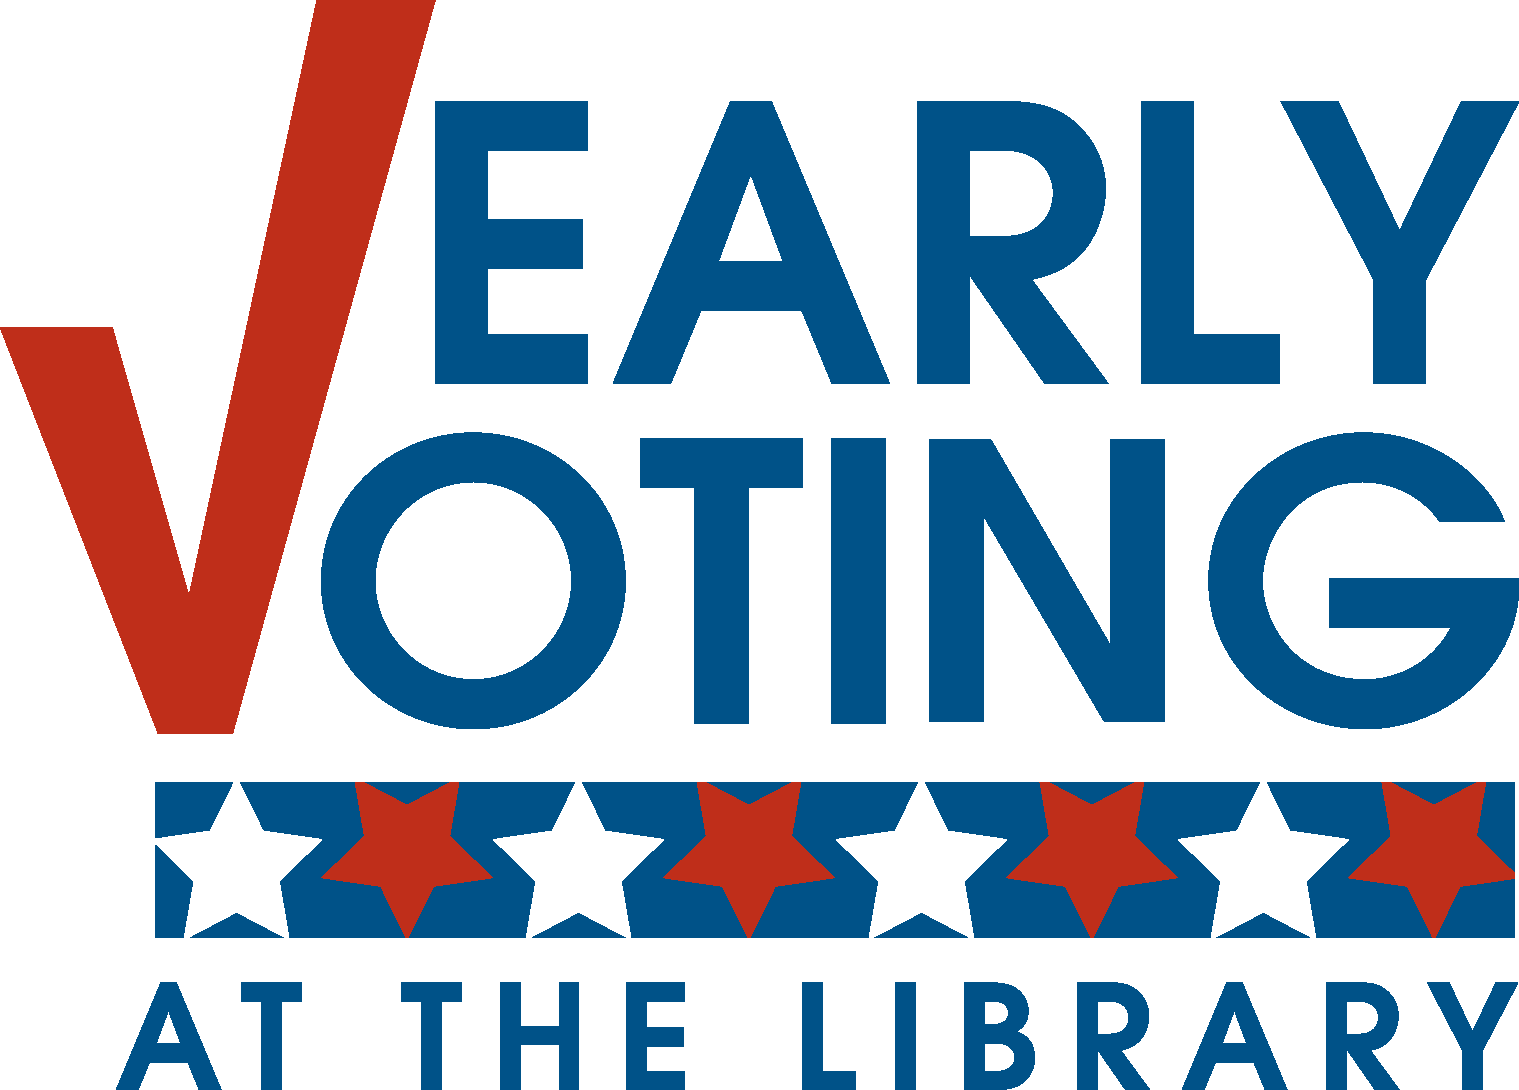 EarlyVotingattheLibrary